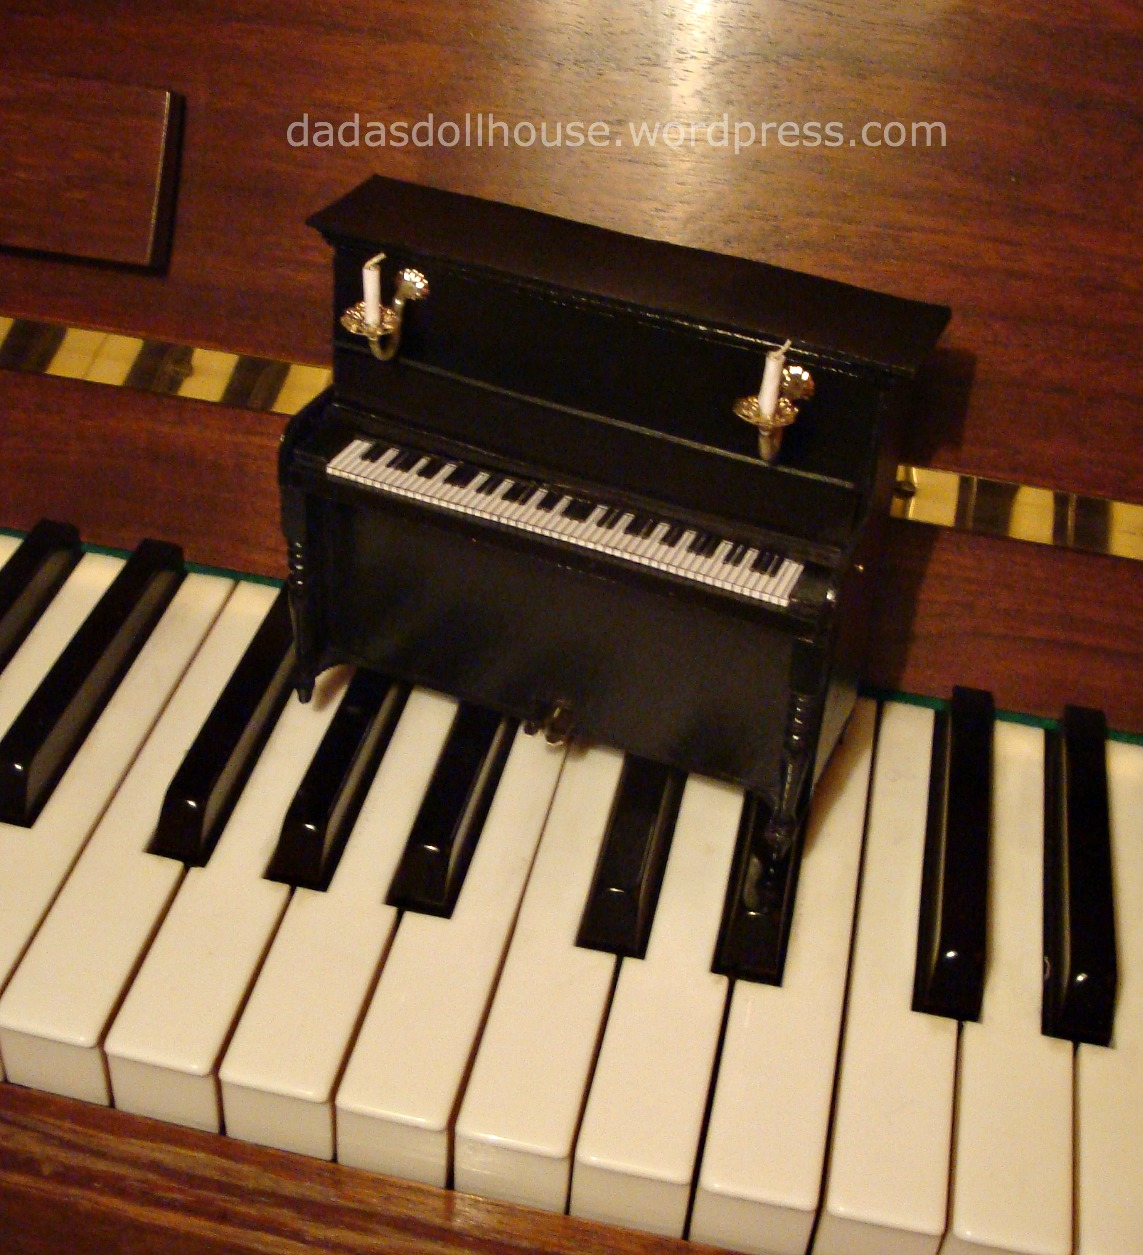 Arredare Con Pianoforte Verticale Il Pianoforte Verticale La Finitura The Upright Piano The